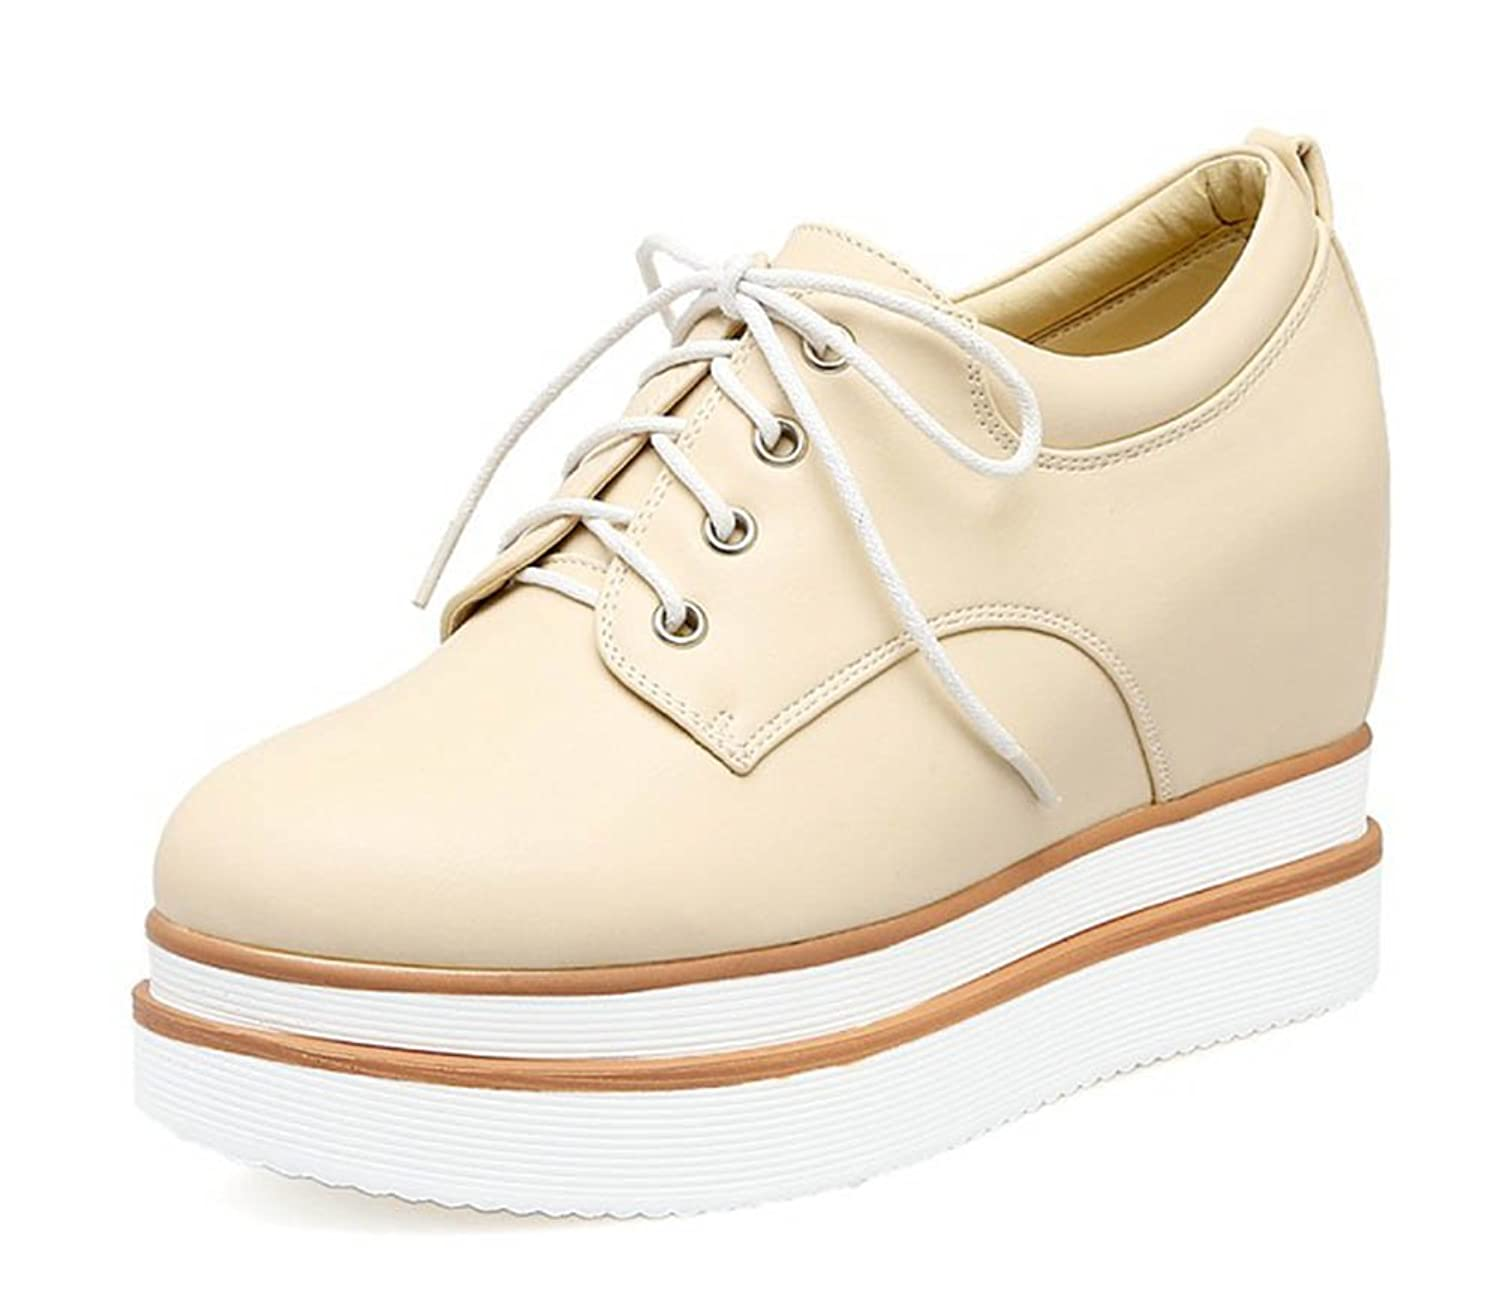 Aisun Women's Casual Studded Round Toe Elevator High Heeled Lace Up Platform Sneakers Shoes